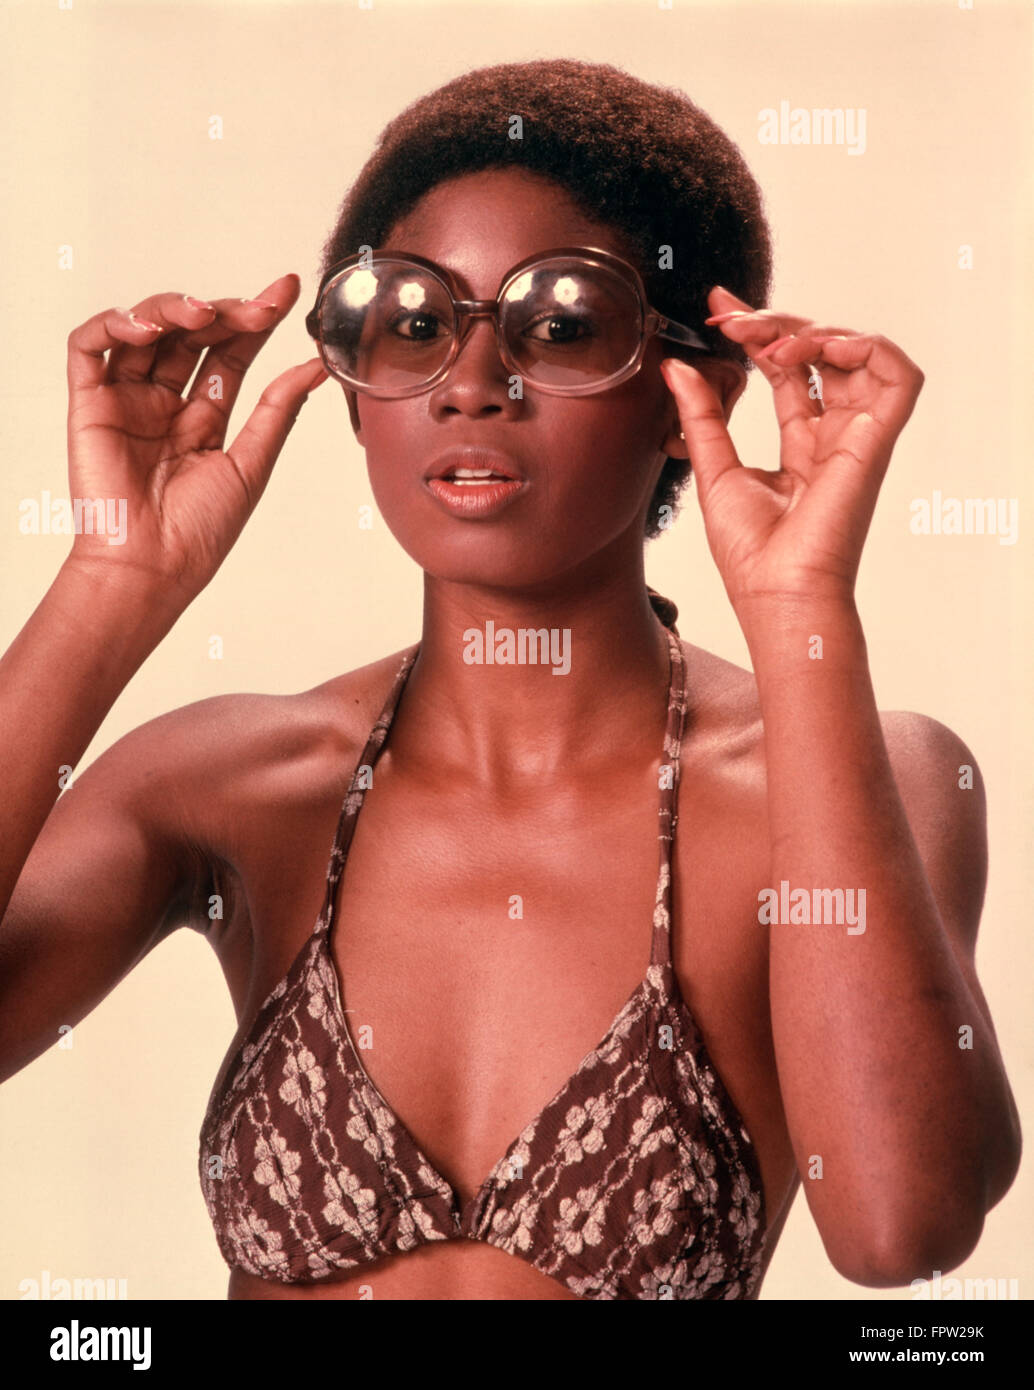 1970s AFRICAN AMERICAN WOMAN WEARING BIKINI BATHING SUIT TOP PUTTING ON LARGE LENS SUNGLASSES LOOKING AT CAMERA - Stock Image